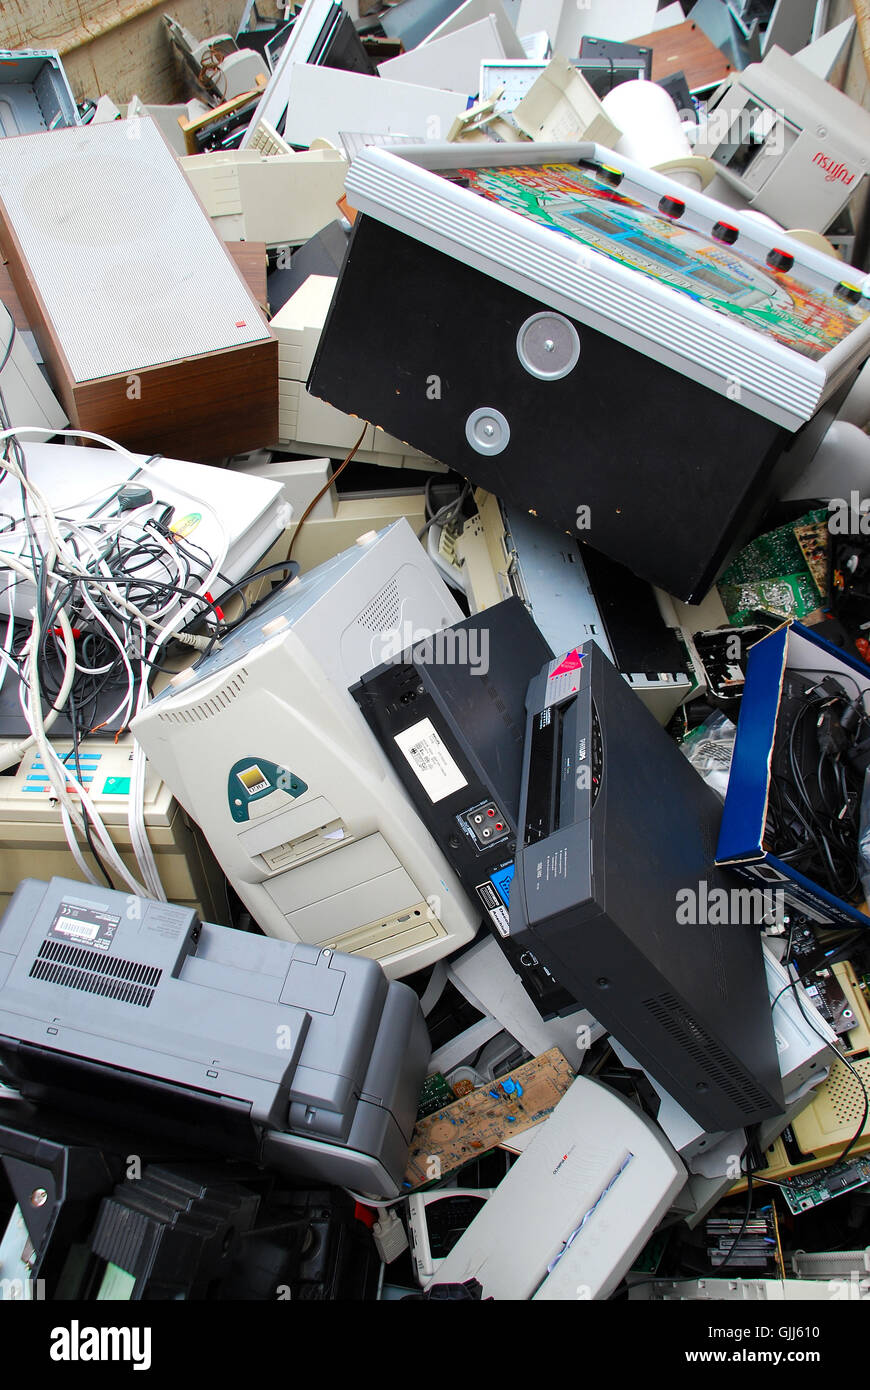 recycling 080 716 2 Stock Photo